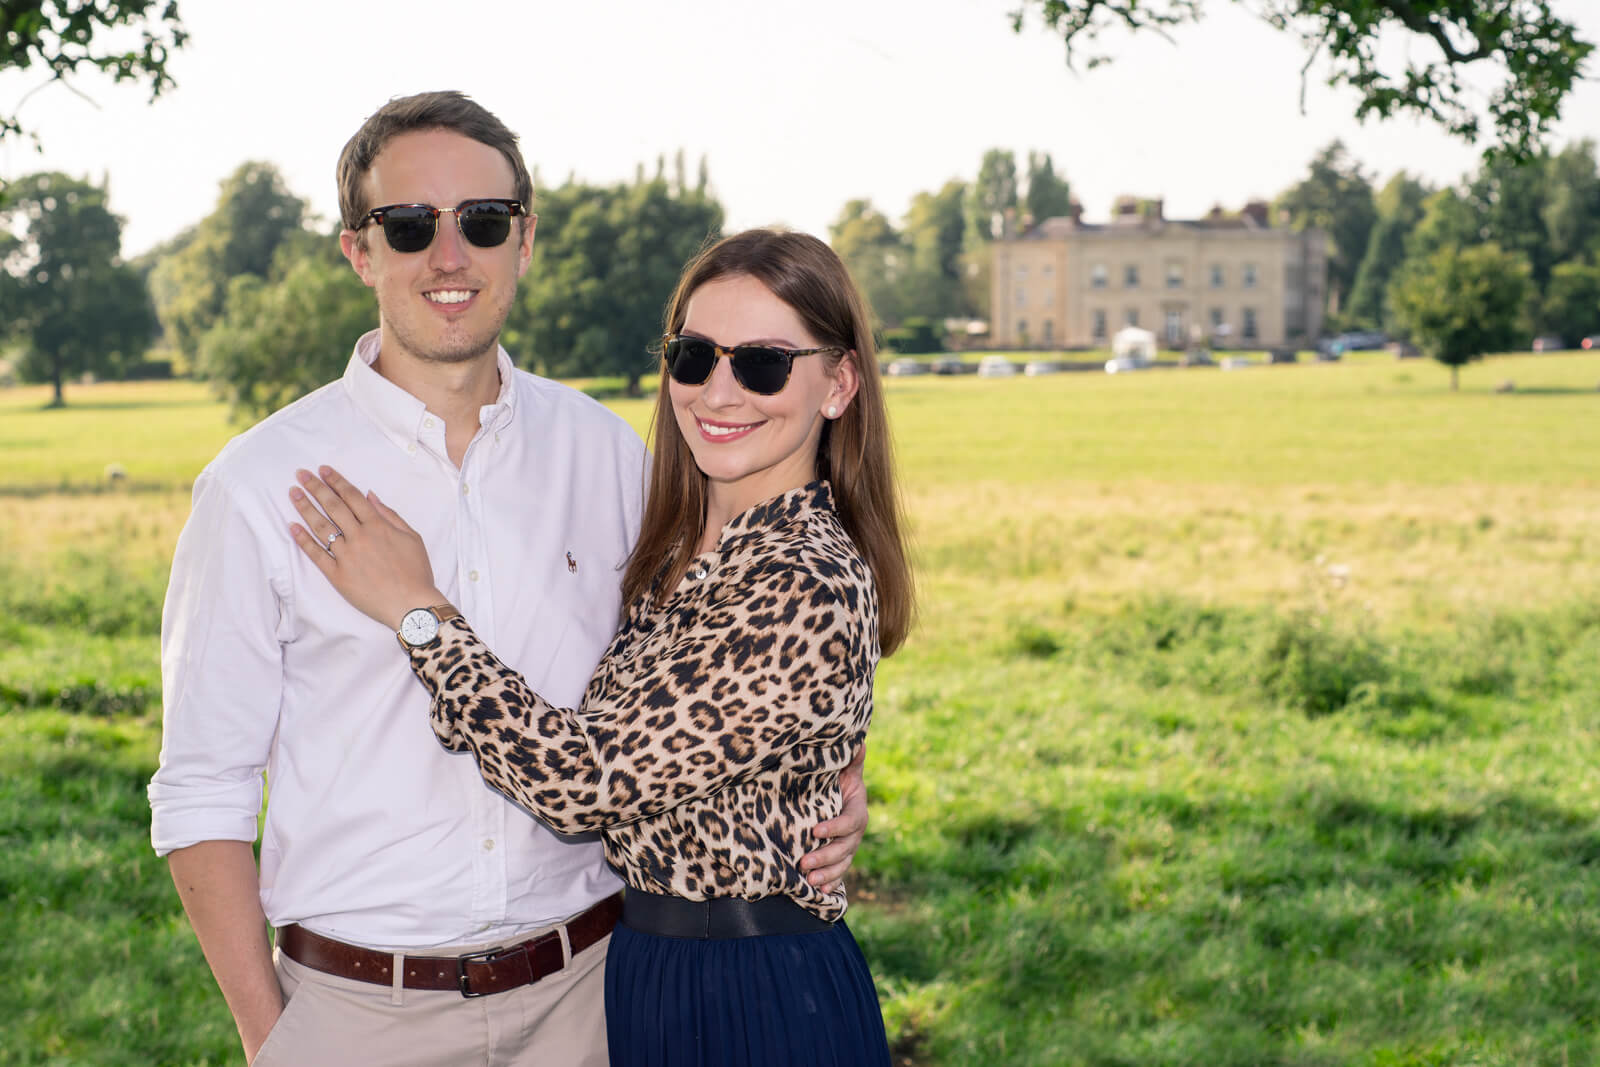 Engaged couple standing in front of a country estate in sunglasses